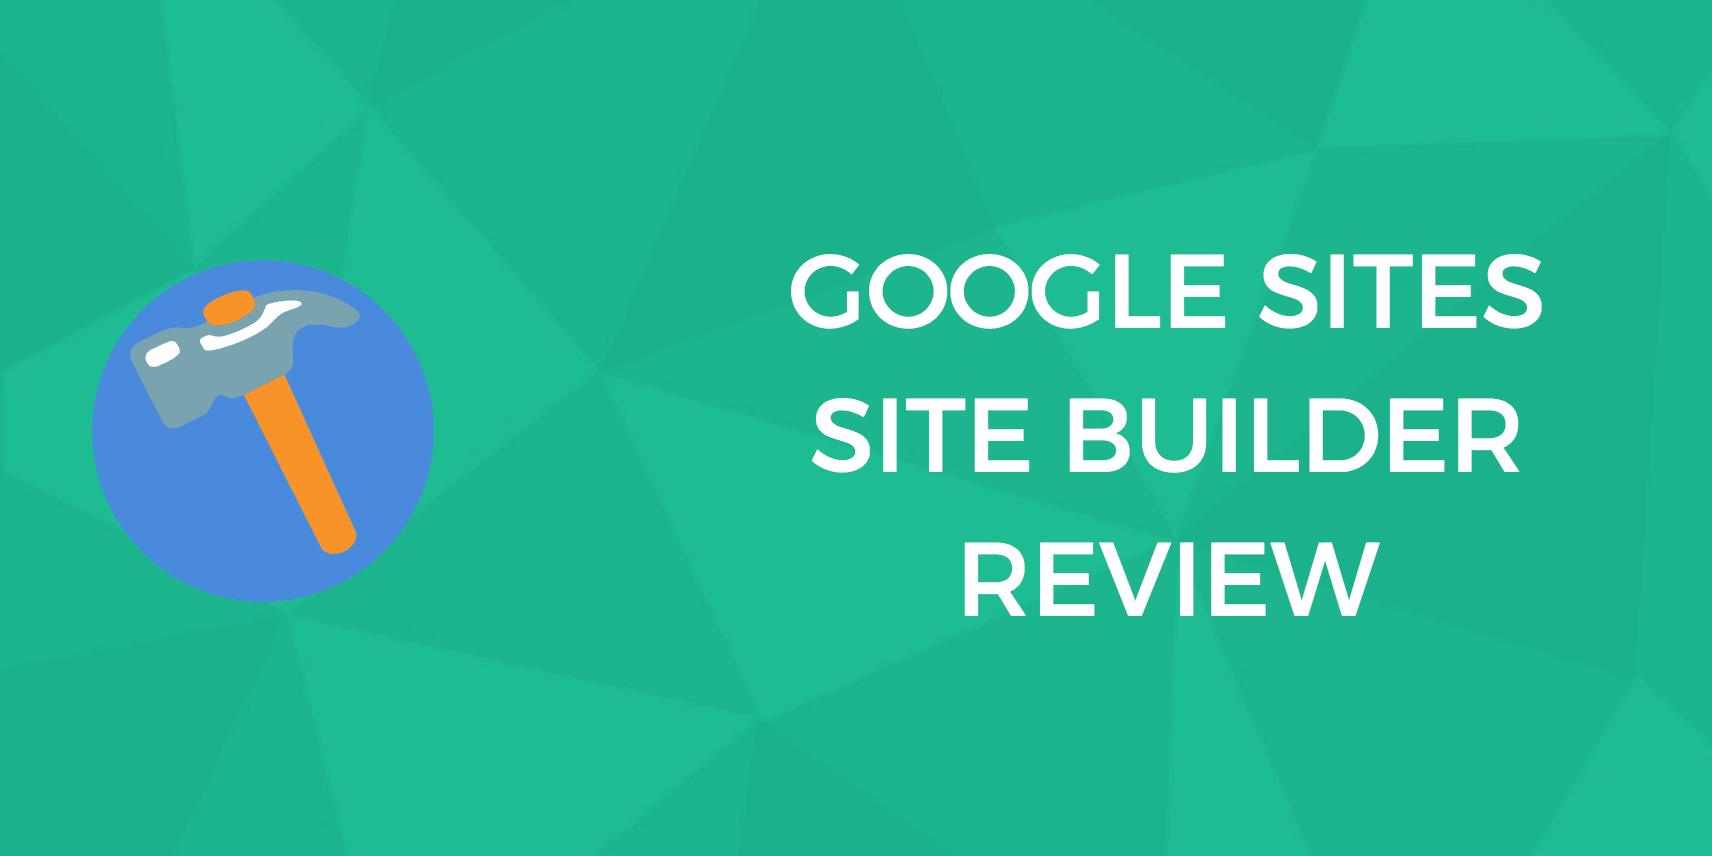 Google Sites Sitebuilder: We Find Out If They Really Live Up